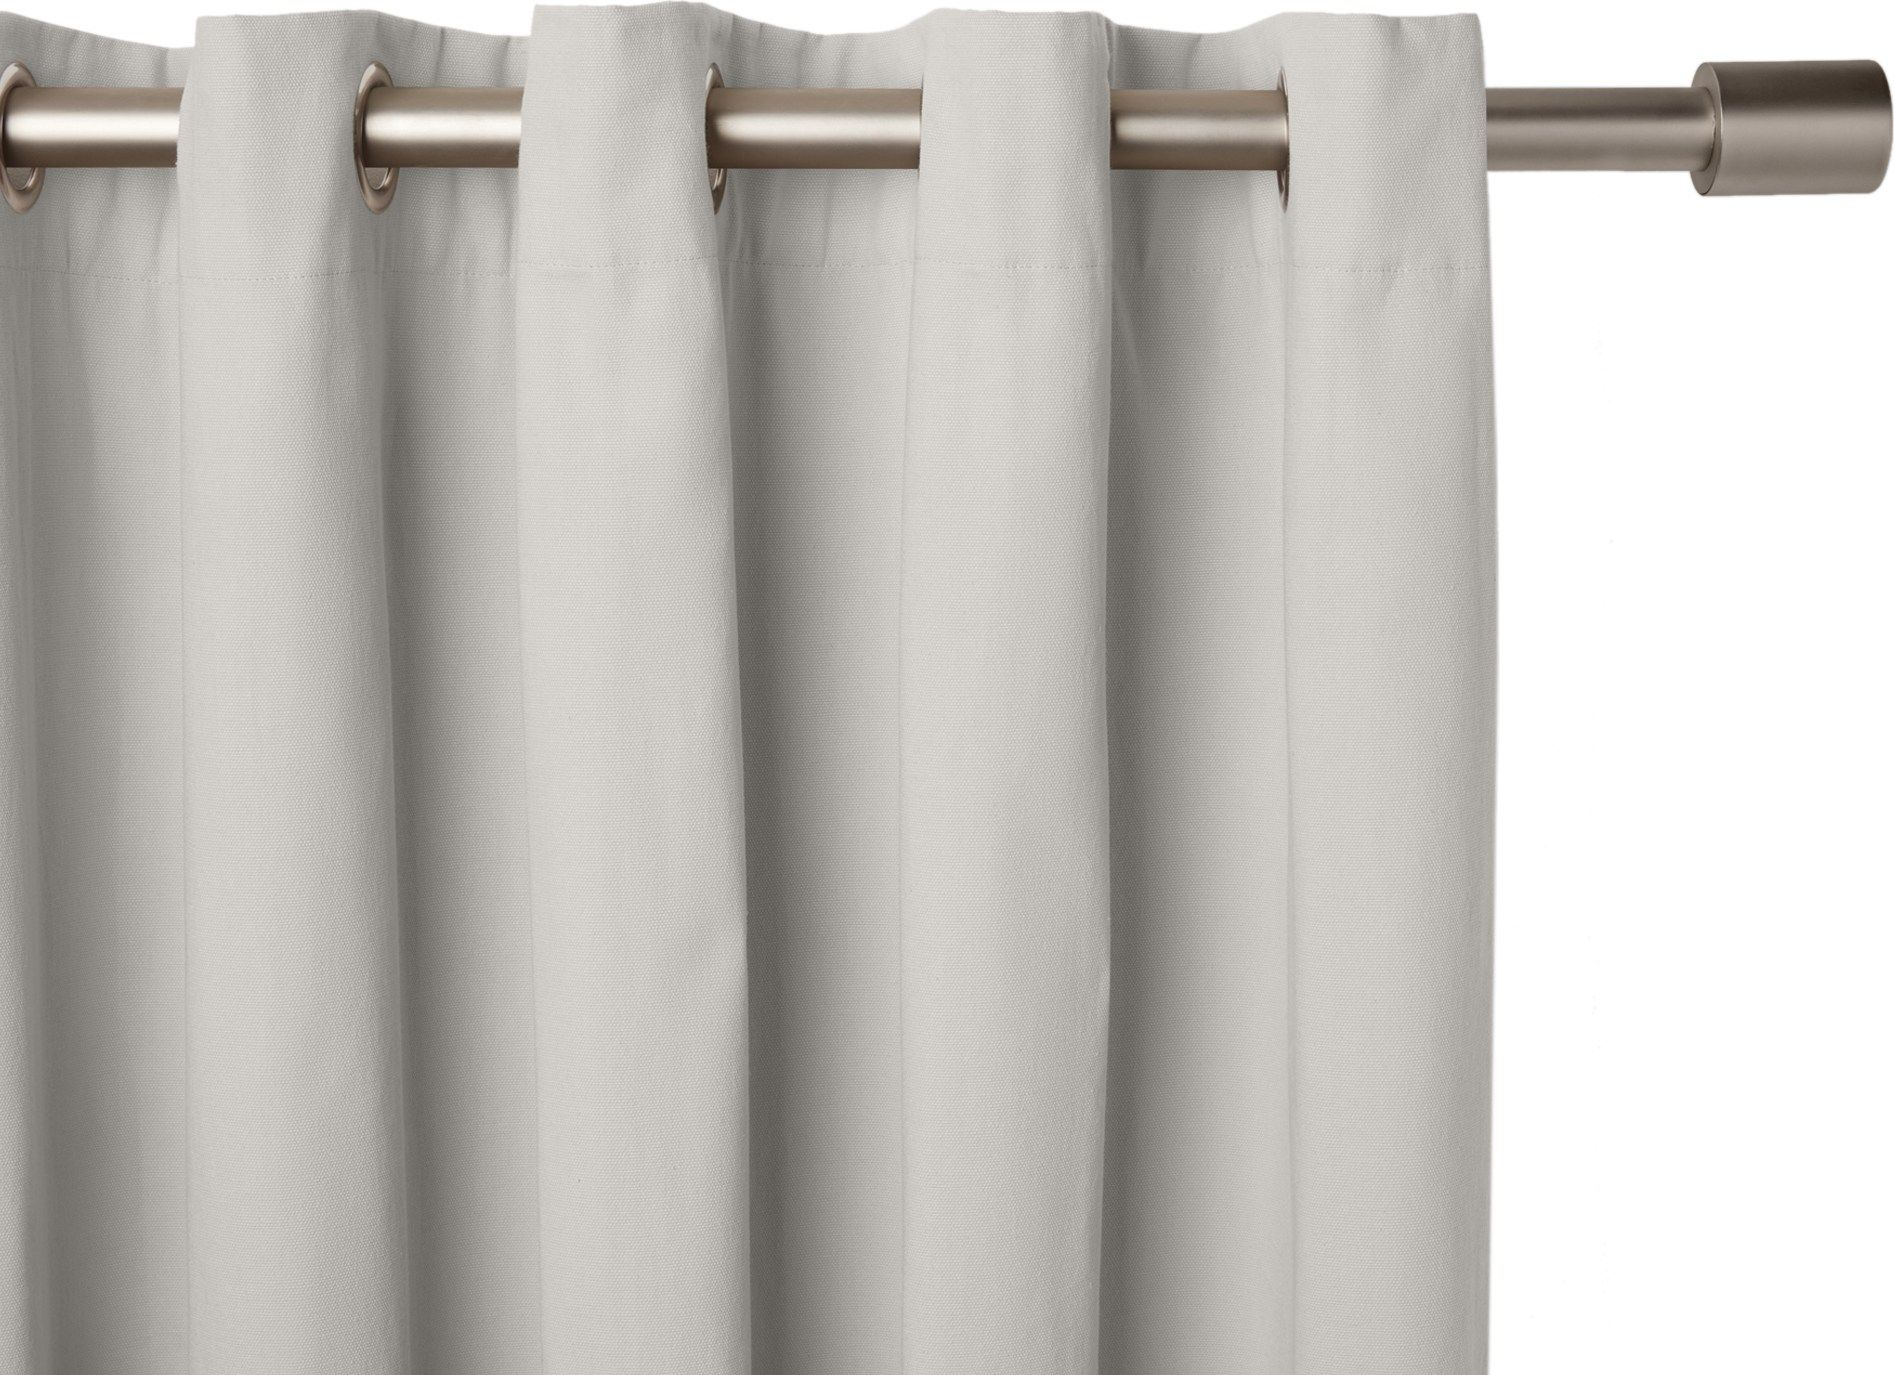 Made x lined cotton eyelet pair of curtains light grey x